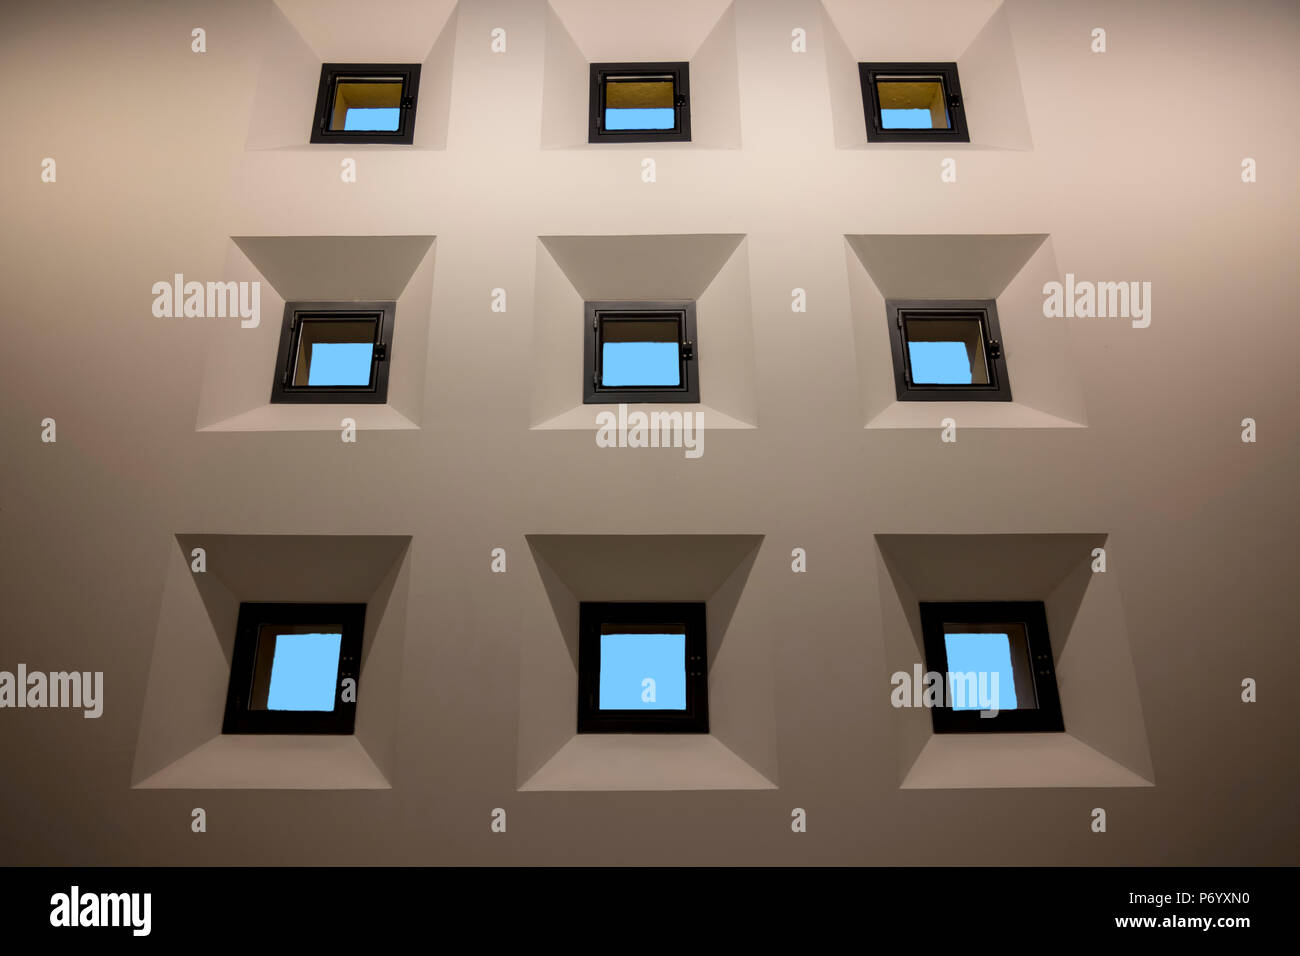 Wall with Small Windows. - Stock Image